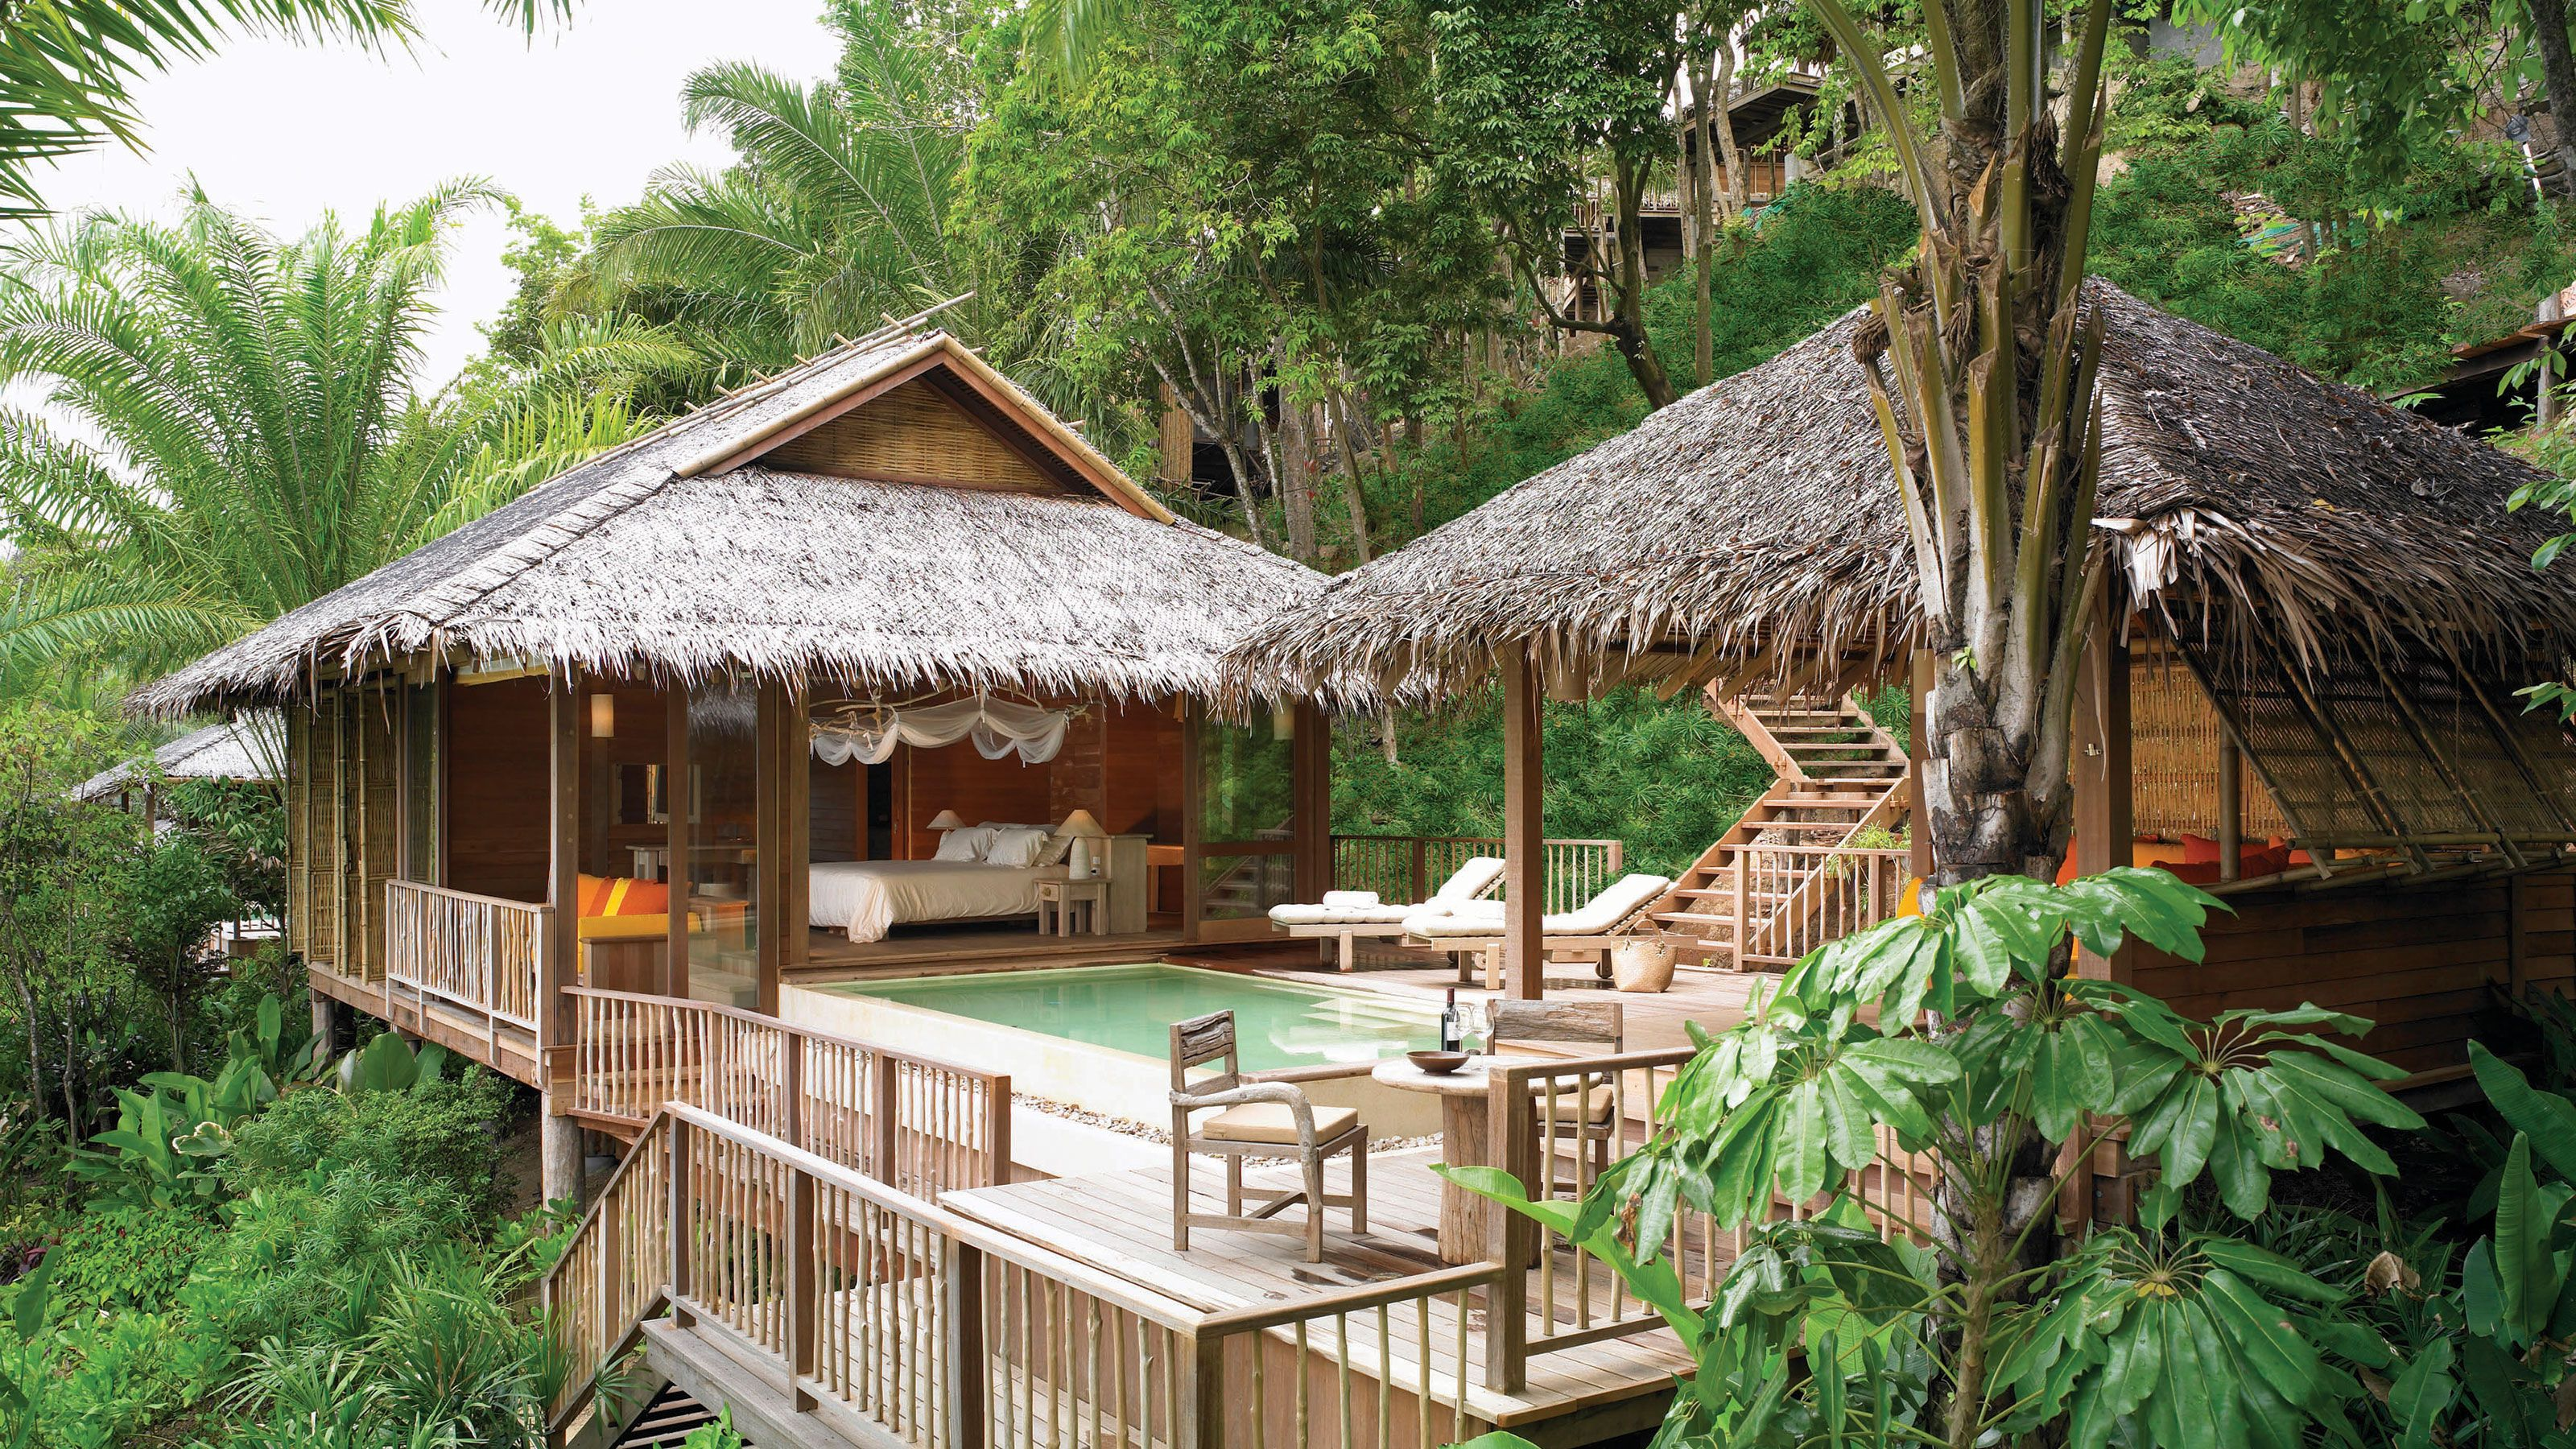 Best Hotels in Thailand Tree house, Tropical houses